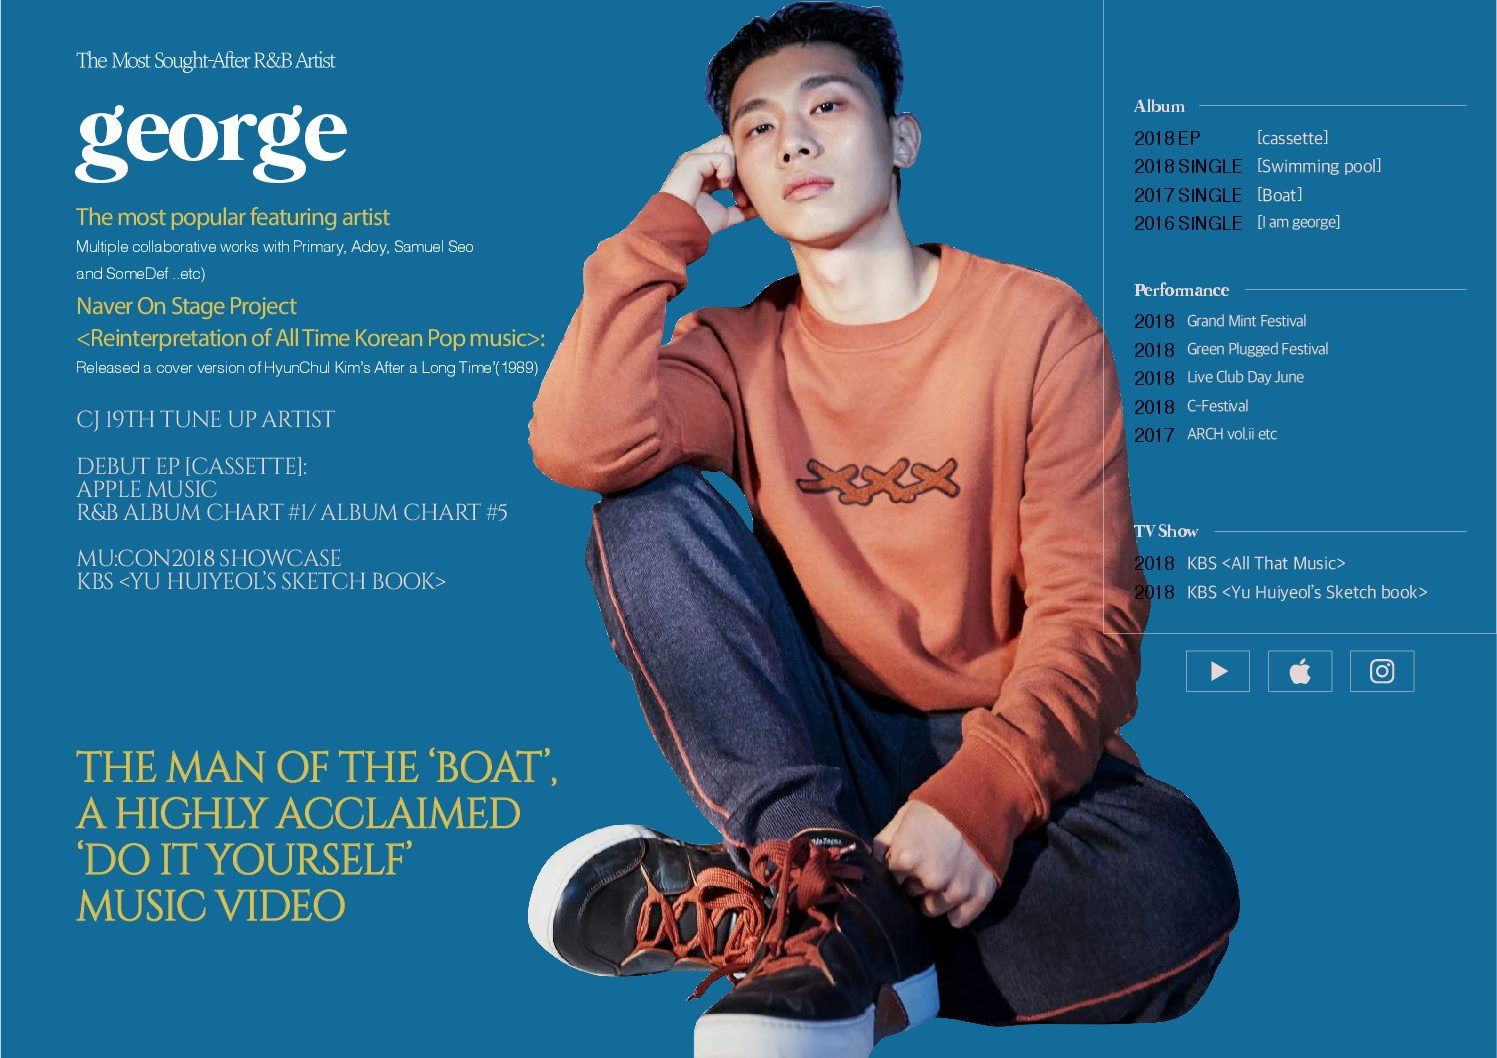 Artist Introduction: Get to know South Korean R&B artist george